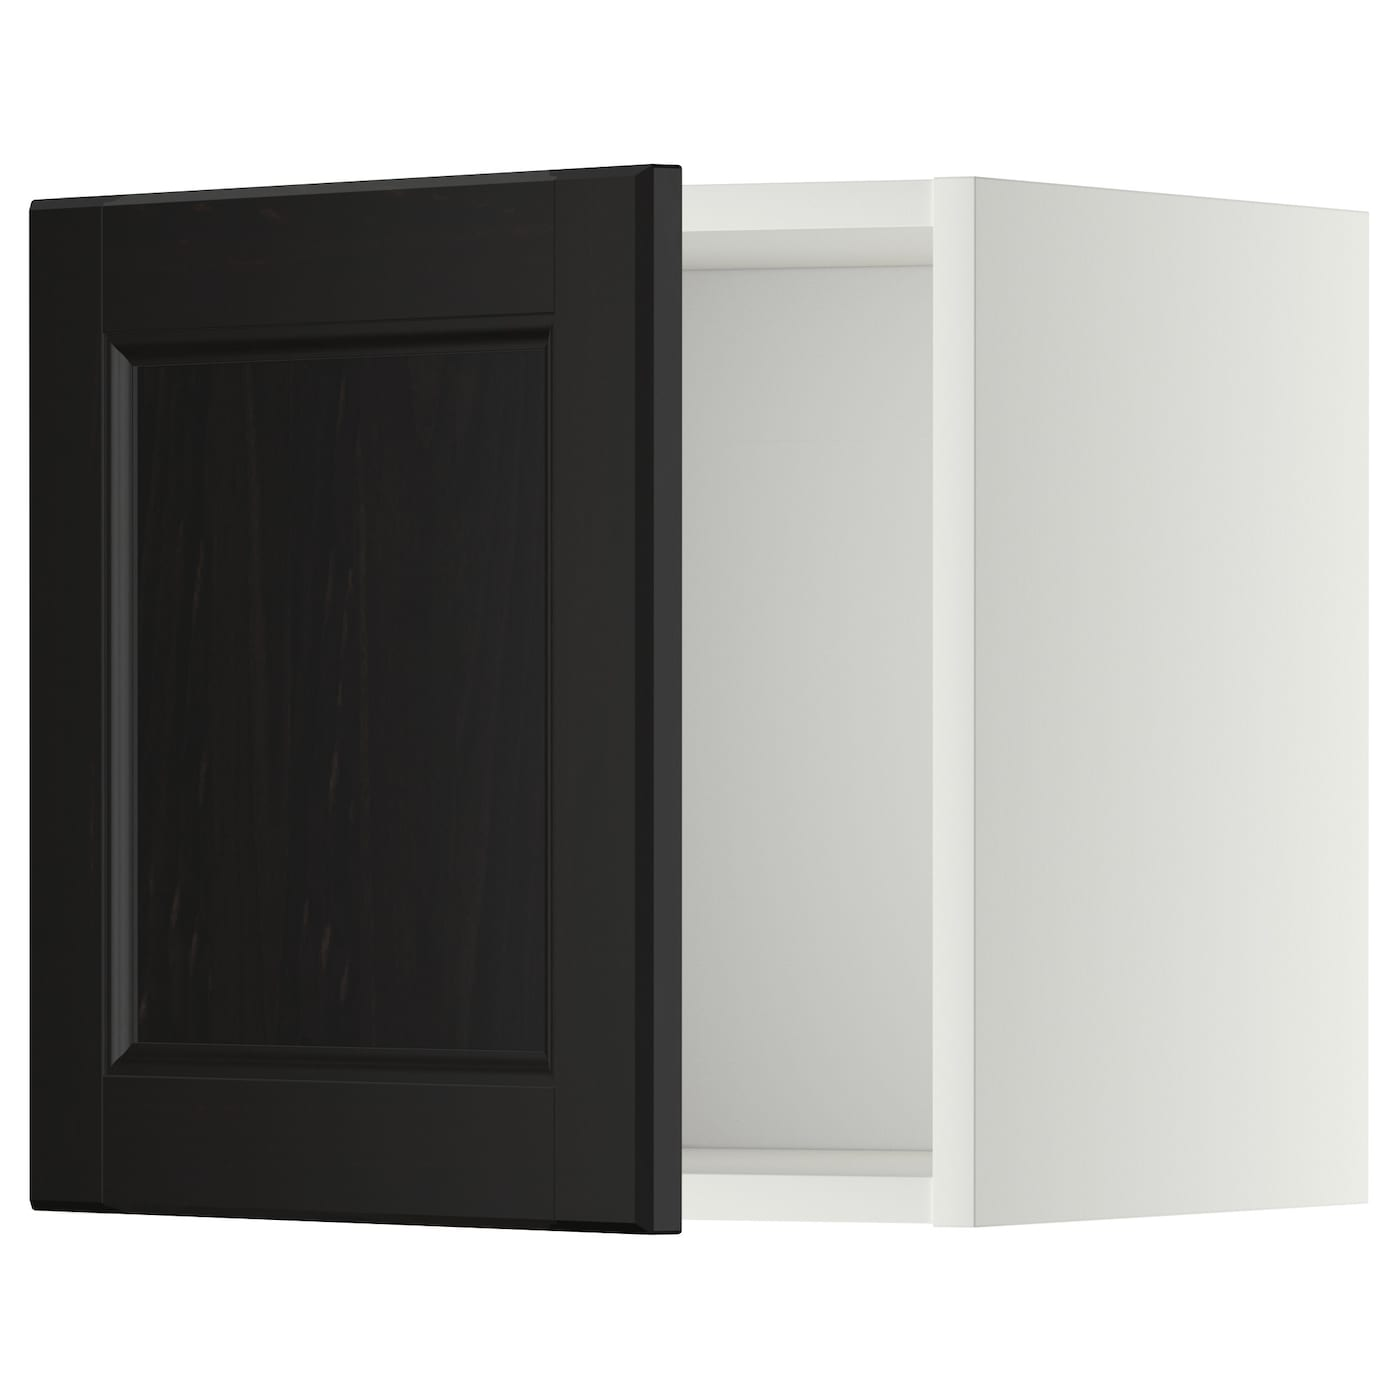 Metod wall cabinet with glass door white laxarby black for Ikea glass door wall cabinet